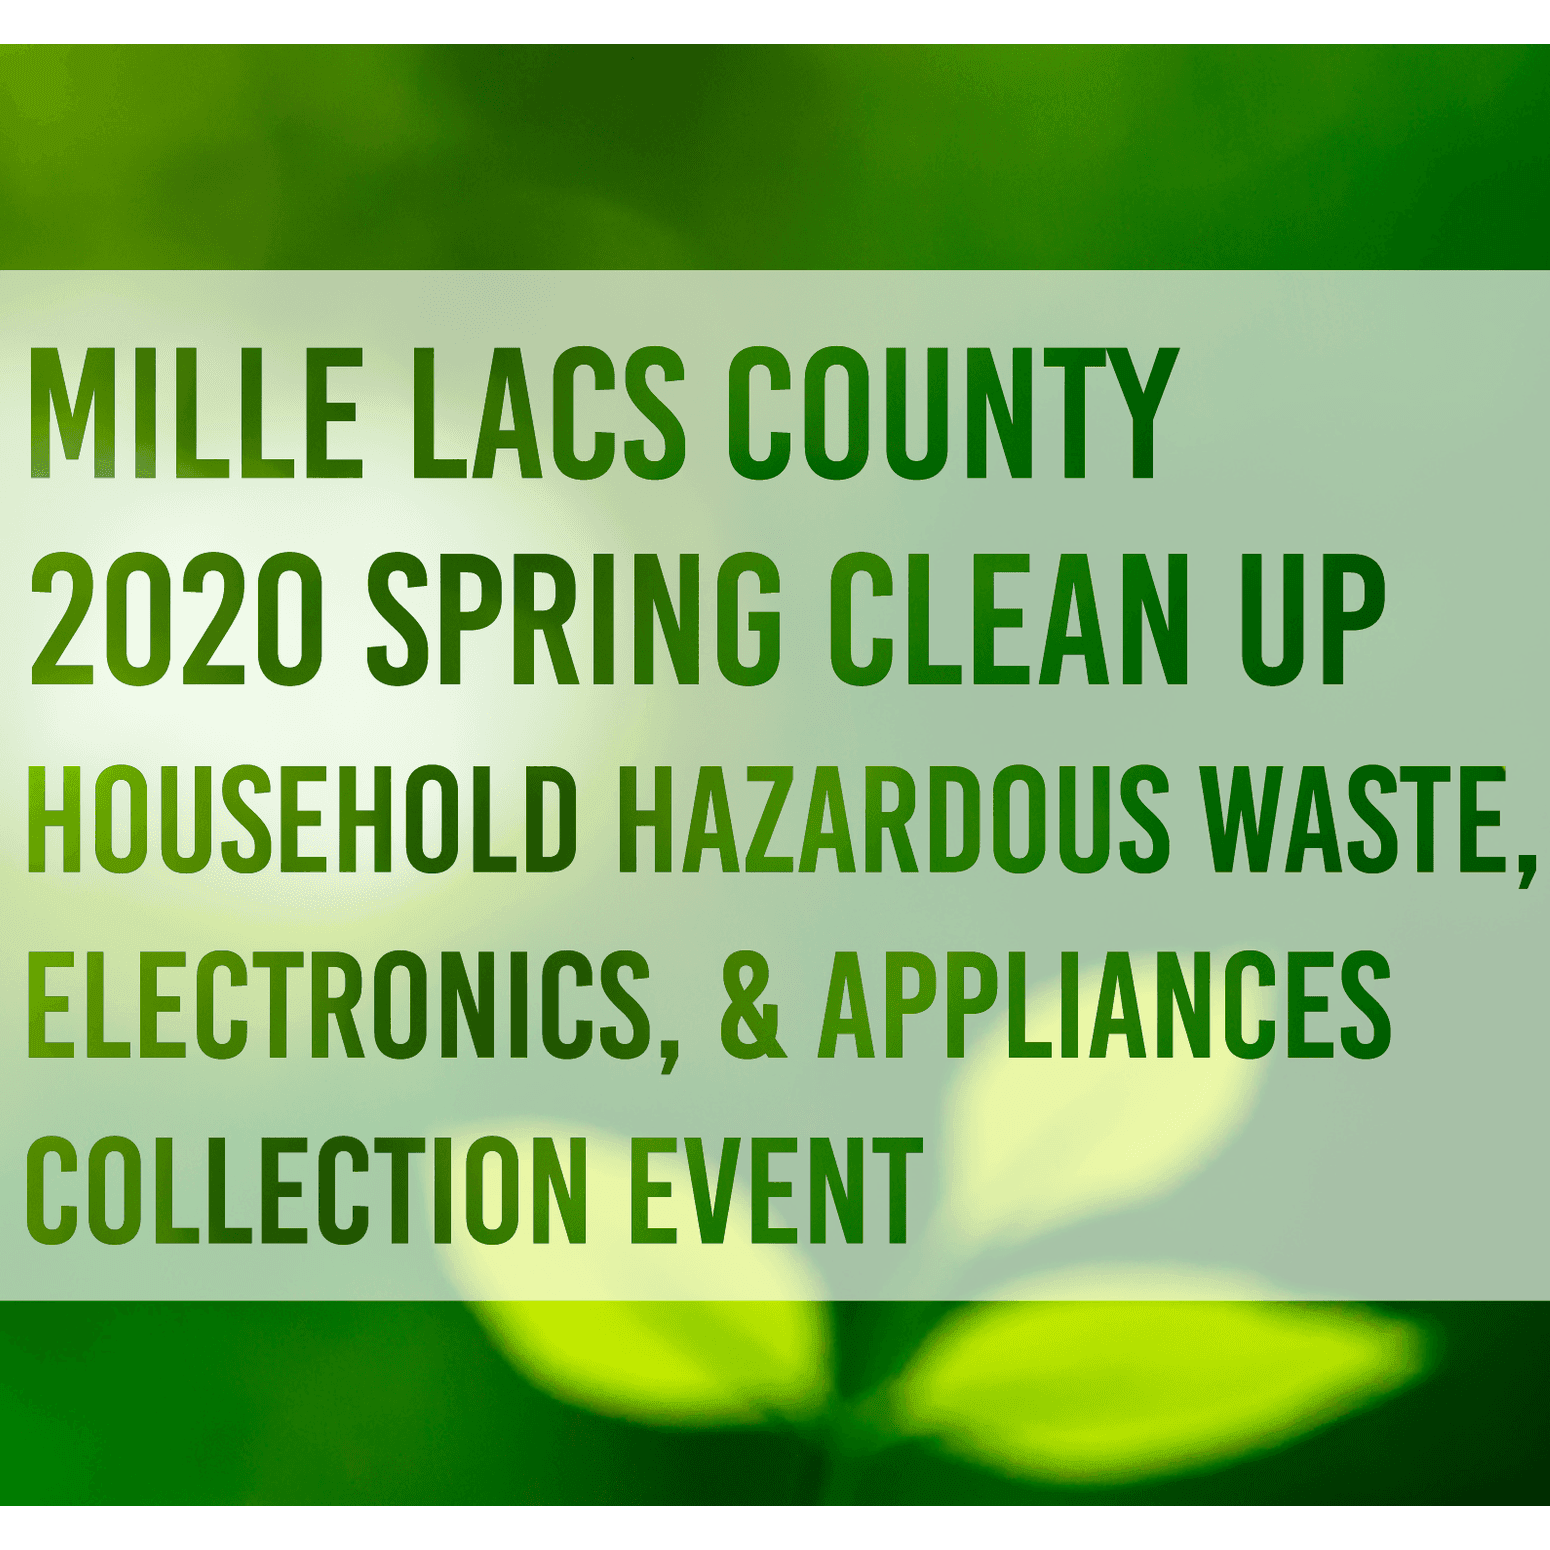 Mille Lacs County 2020 Spring Clean Up Household Hazardous Waste, Electronics, and Appliances Collec